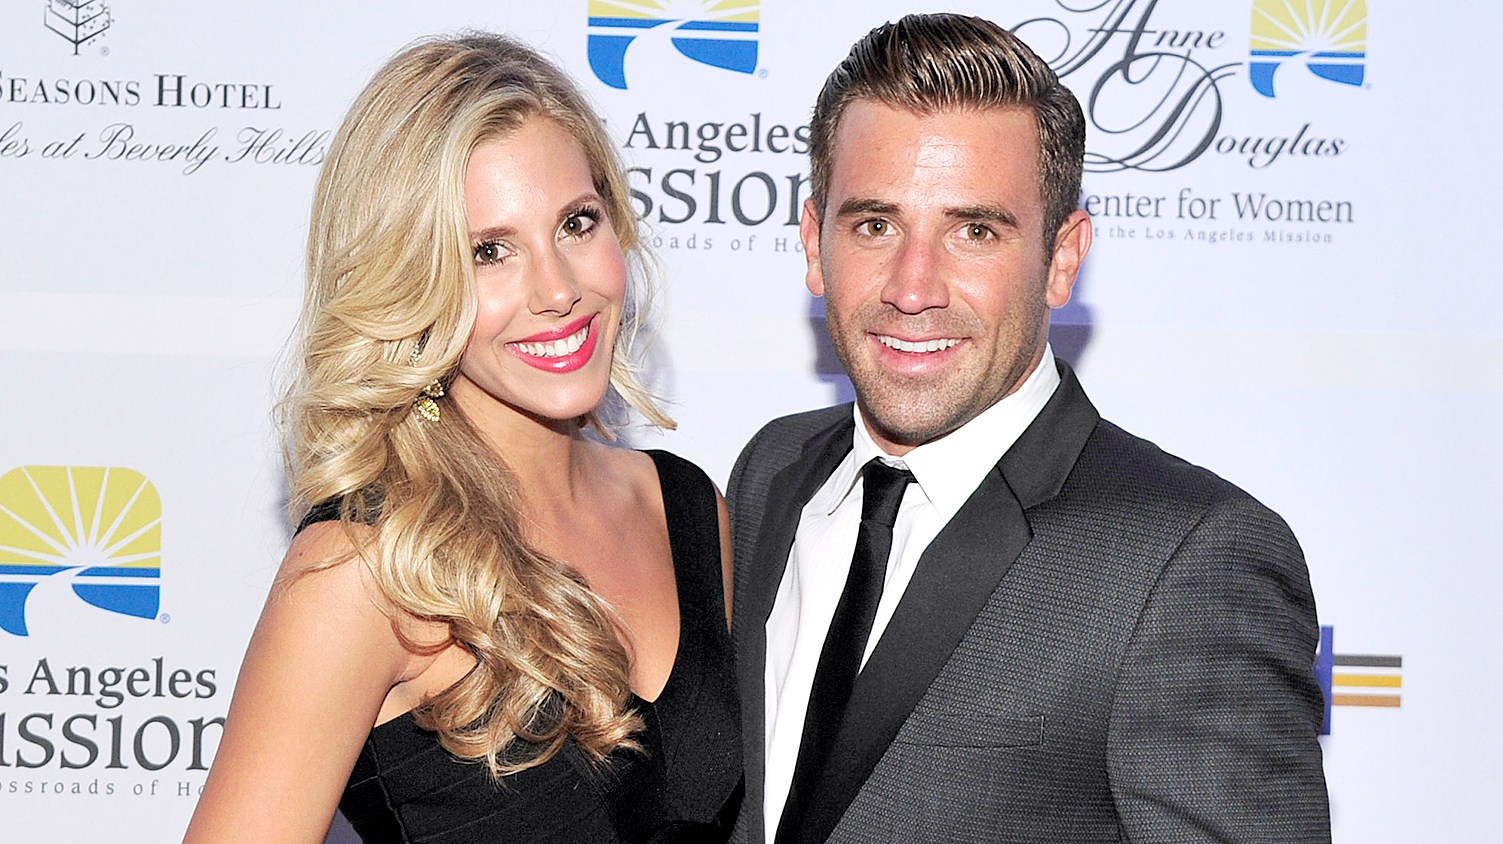 """Ashley Slack and Jason Wahler attend the Los Angeles Mission's """"Legacy of Vision"""" Gala at the Four Seasons Hotel Beverly Hills on September 24, 2013 in Beverly Hills, California."""